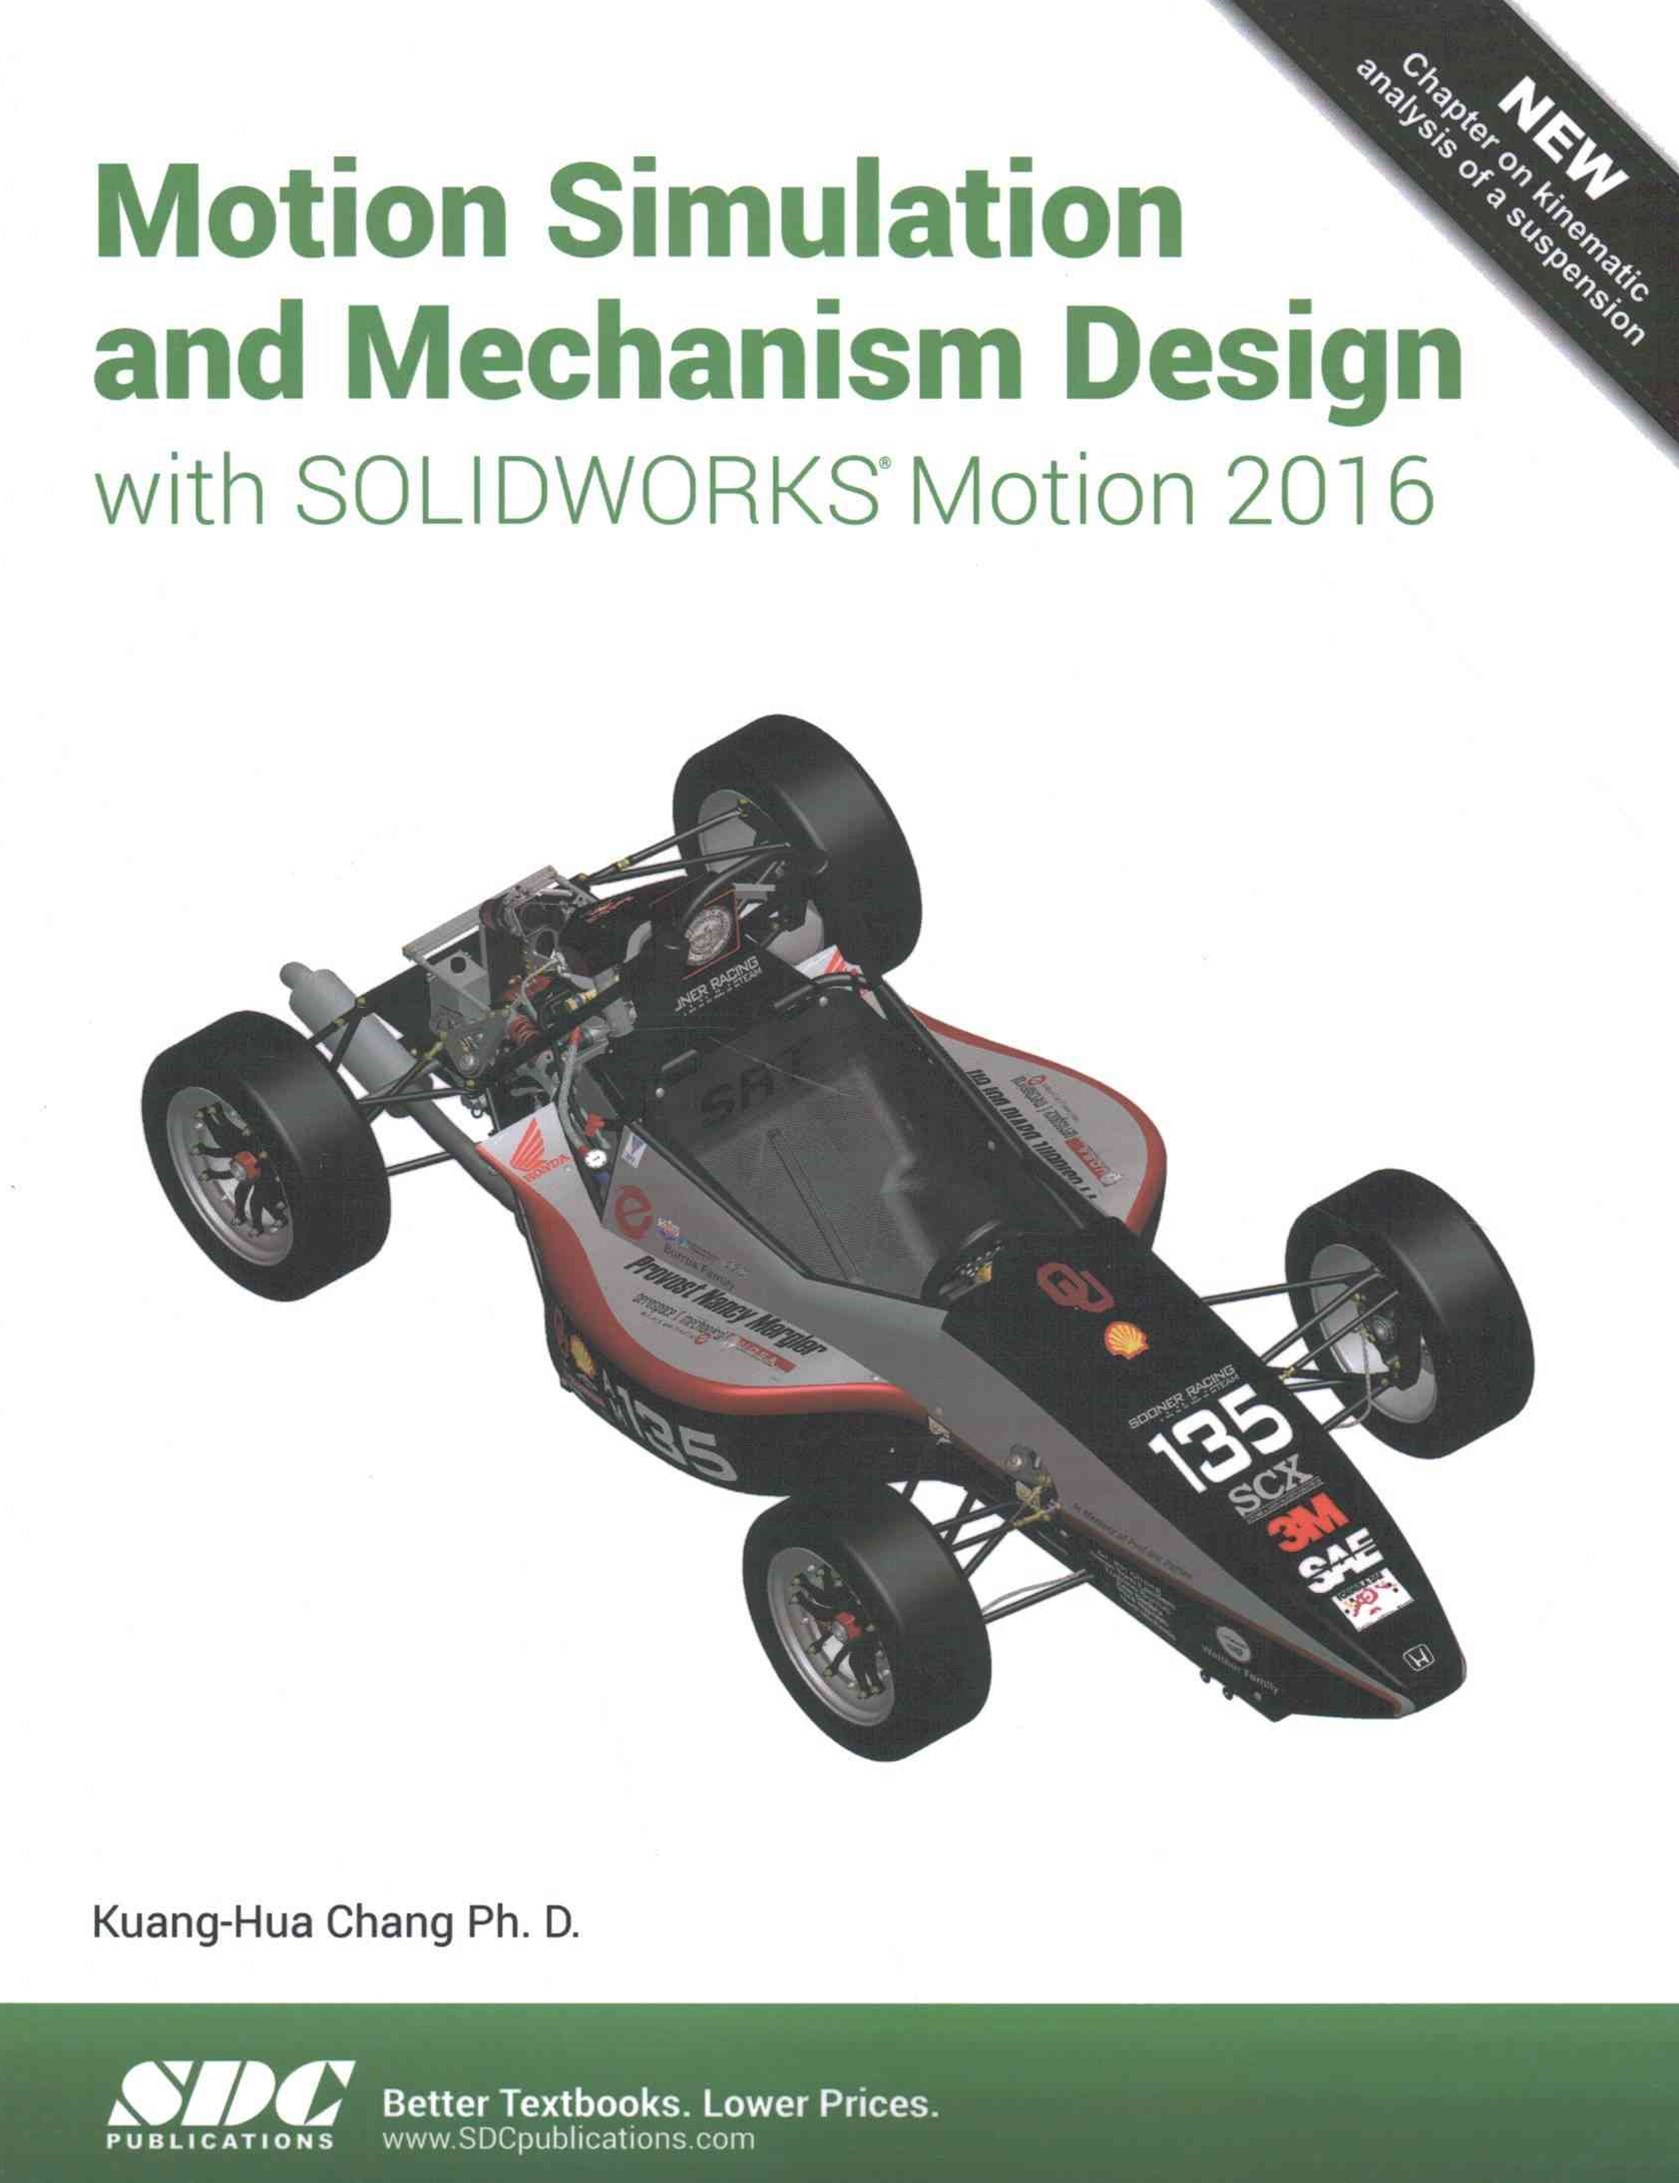 Motion Simulation and Mechanism Design with SolidWorks Motion 2016